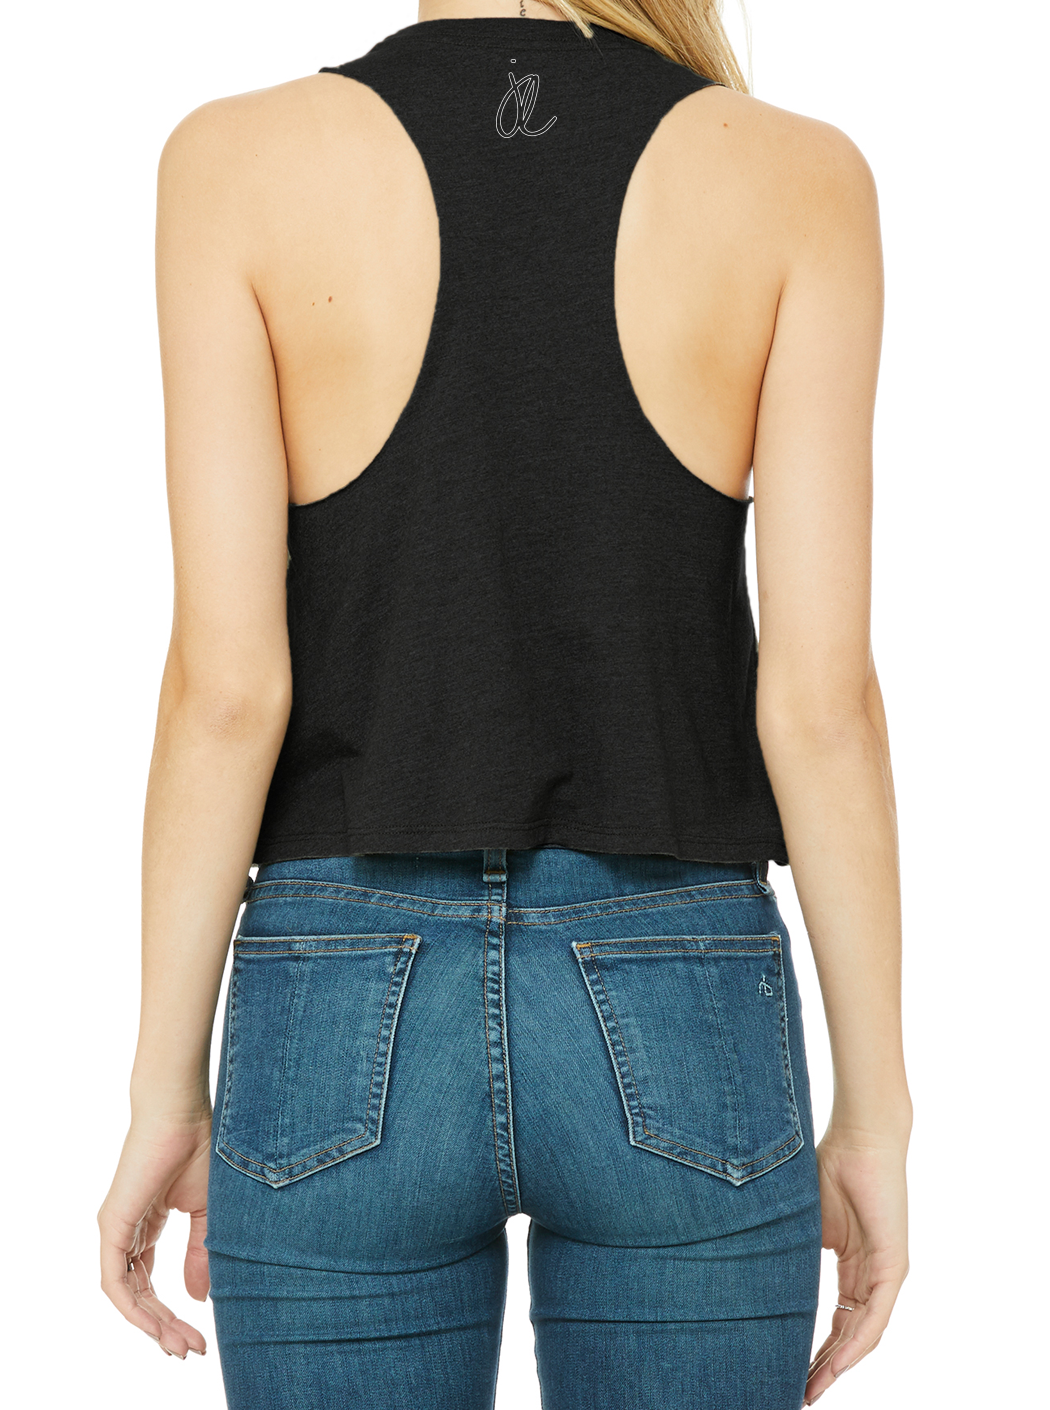 EXPECTATIONS Women's Racerback Cropped Tank